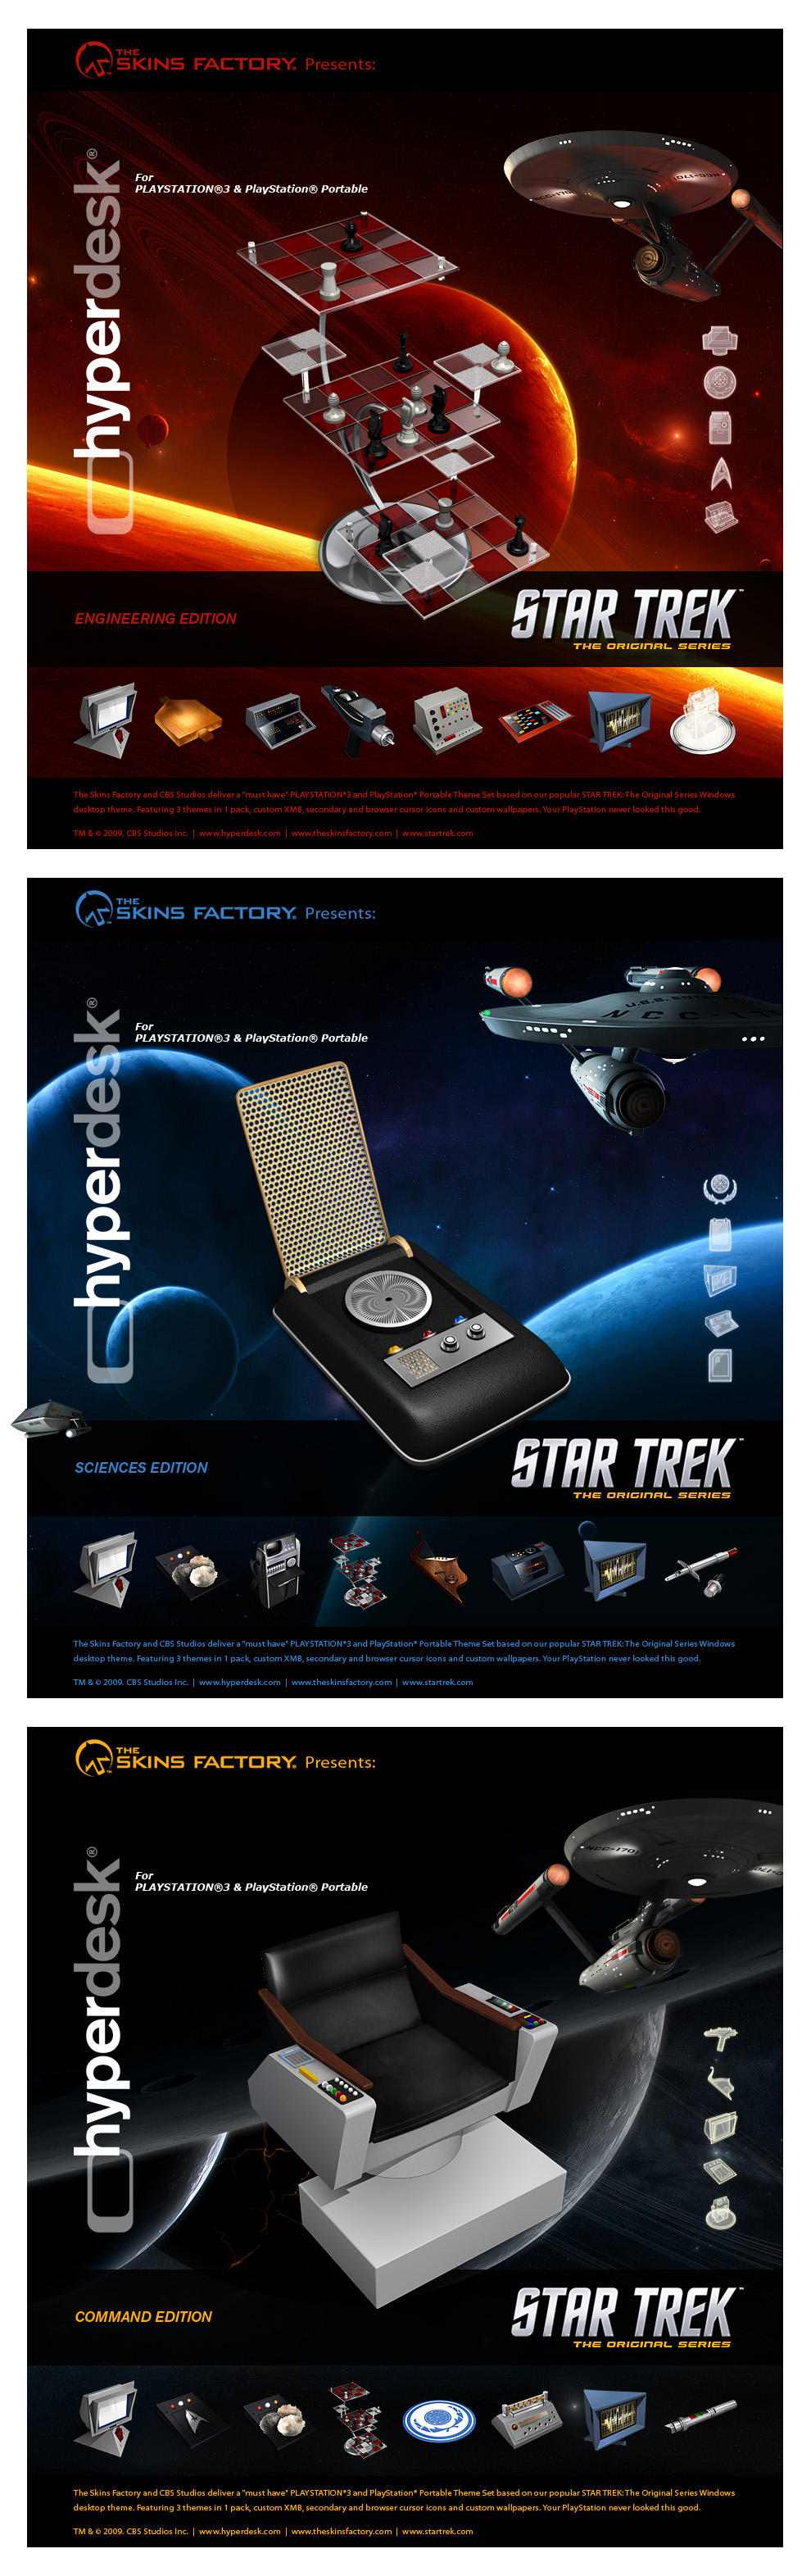 Star Trek PlayStation Pack by skinsfactory